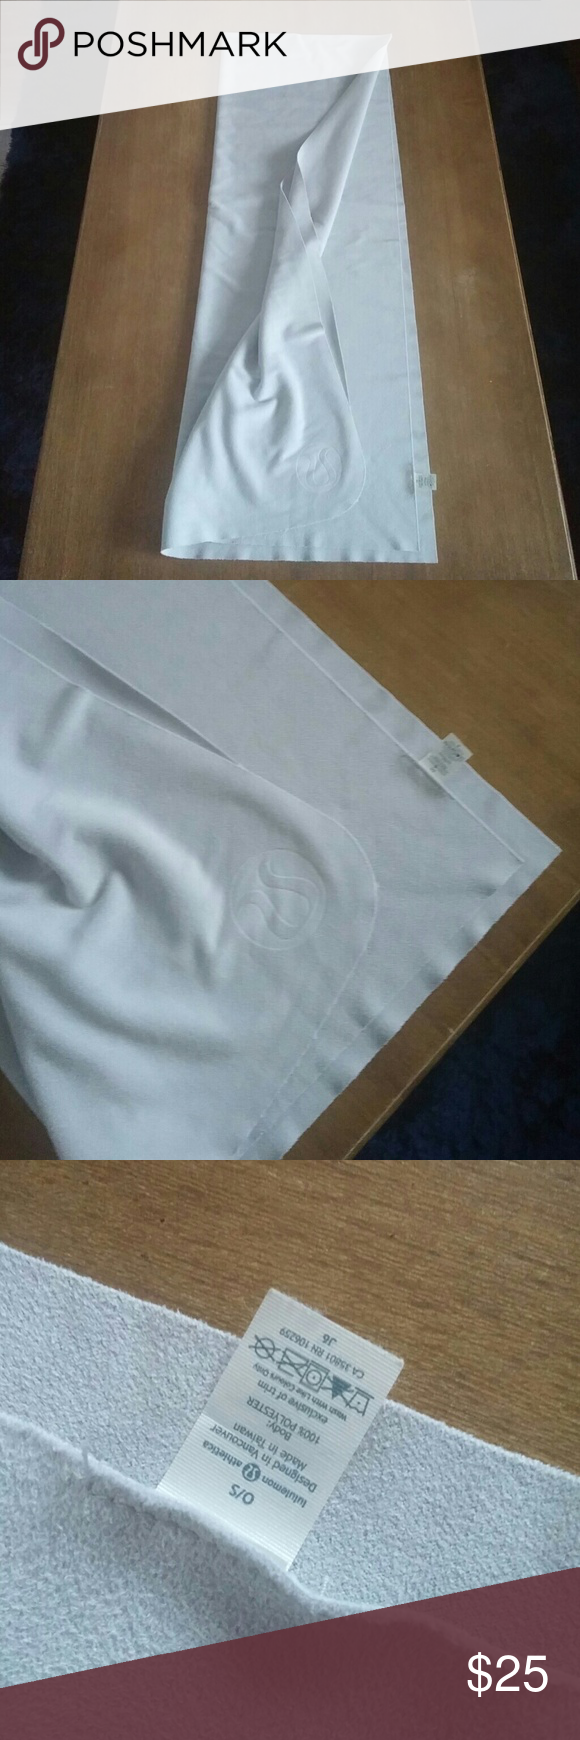 Lululemon towel or mat cover In excellent condition. Light grey in color. Feels like suede microfiber. Selling as is its a good big size. lululemon athletica Other